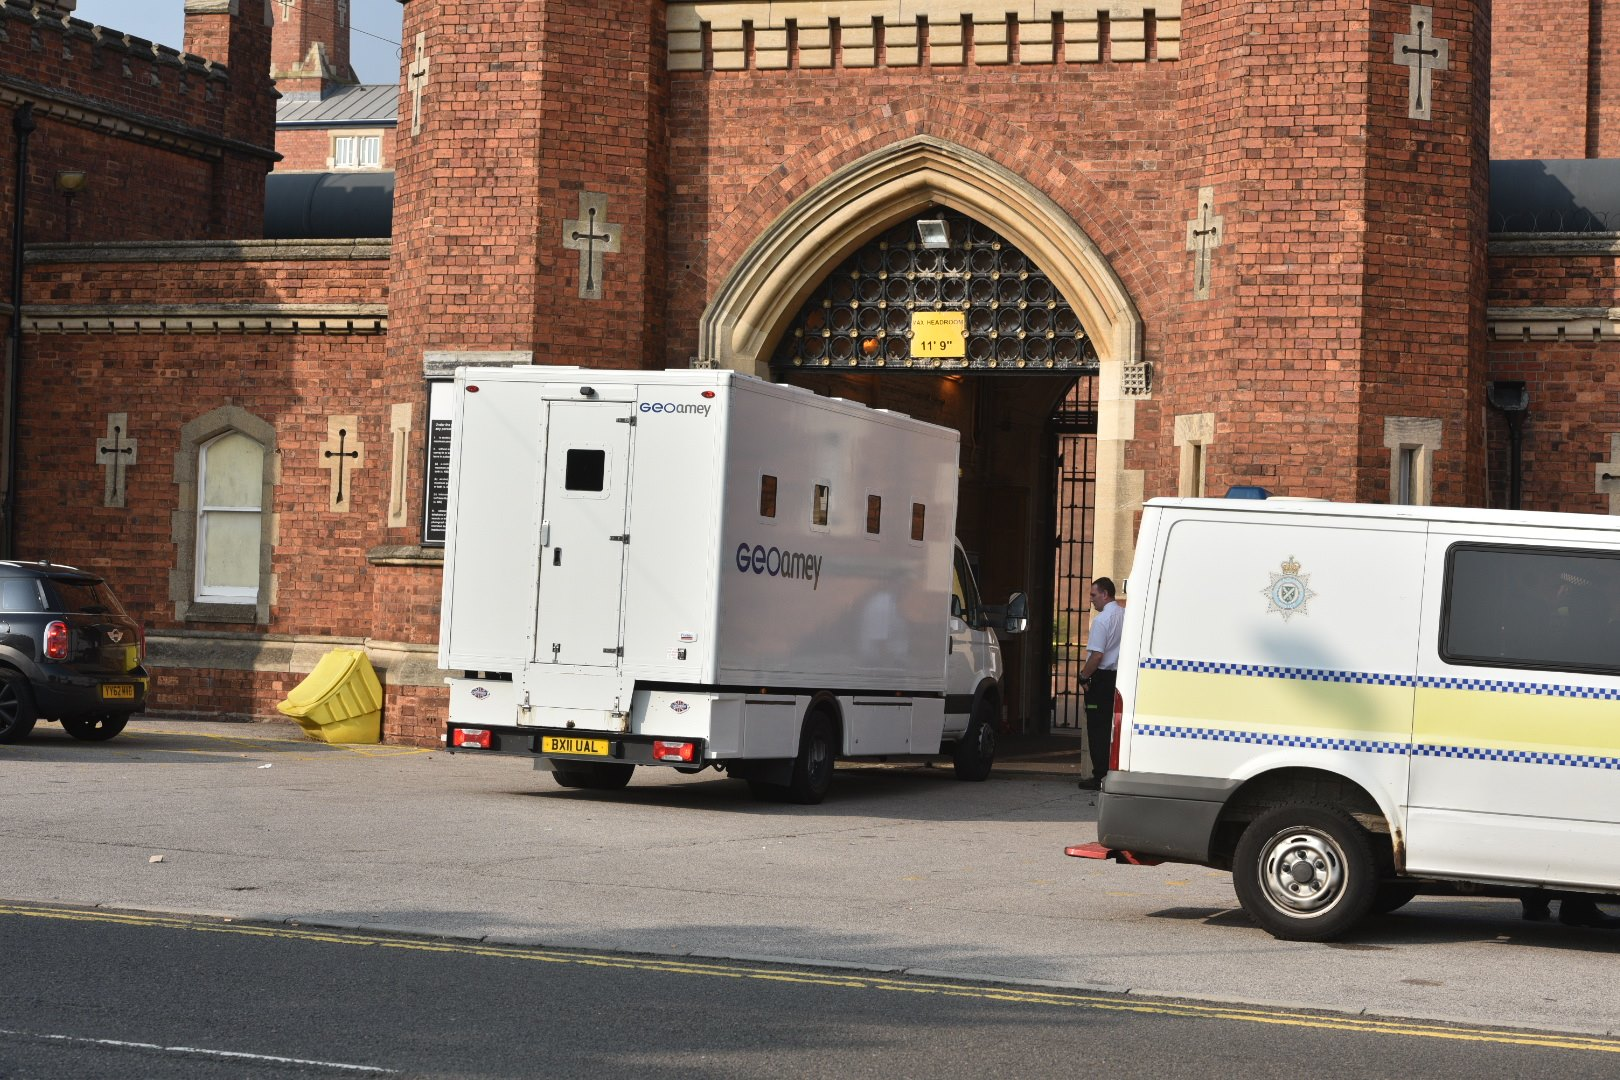 Transportation vans were let into the prison grounds at around 3.30pm. Photo: Steve Smailes for The Lincolnite